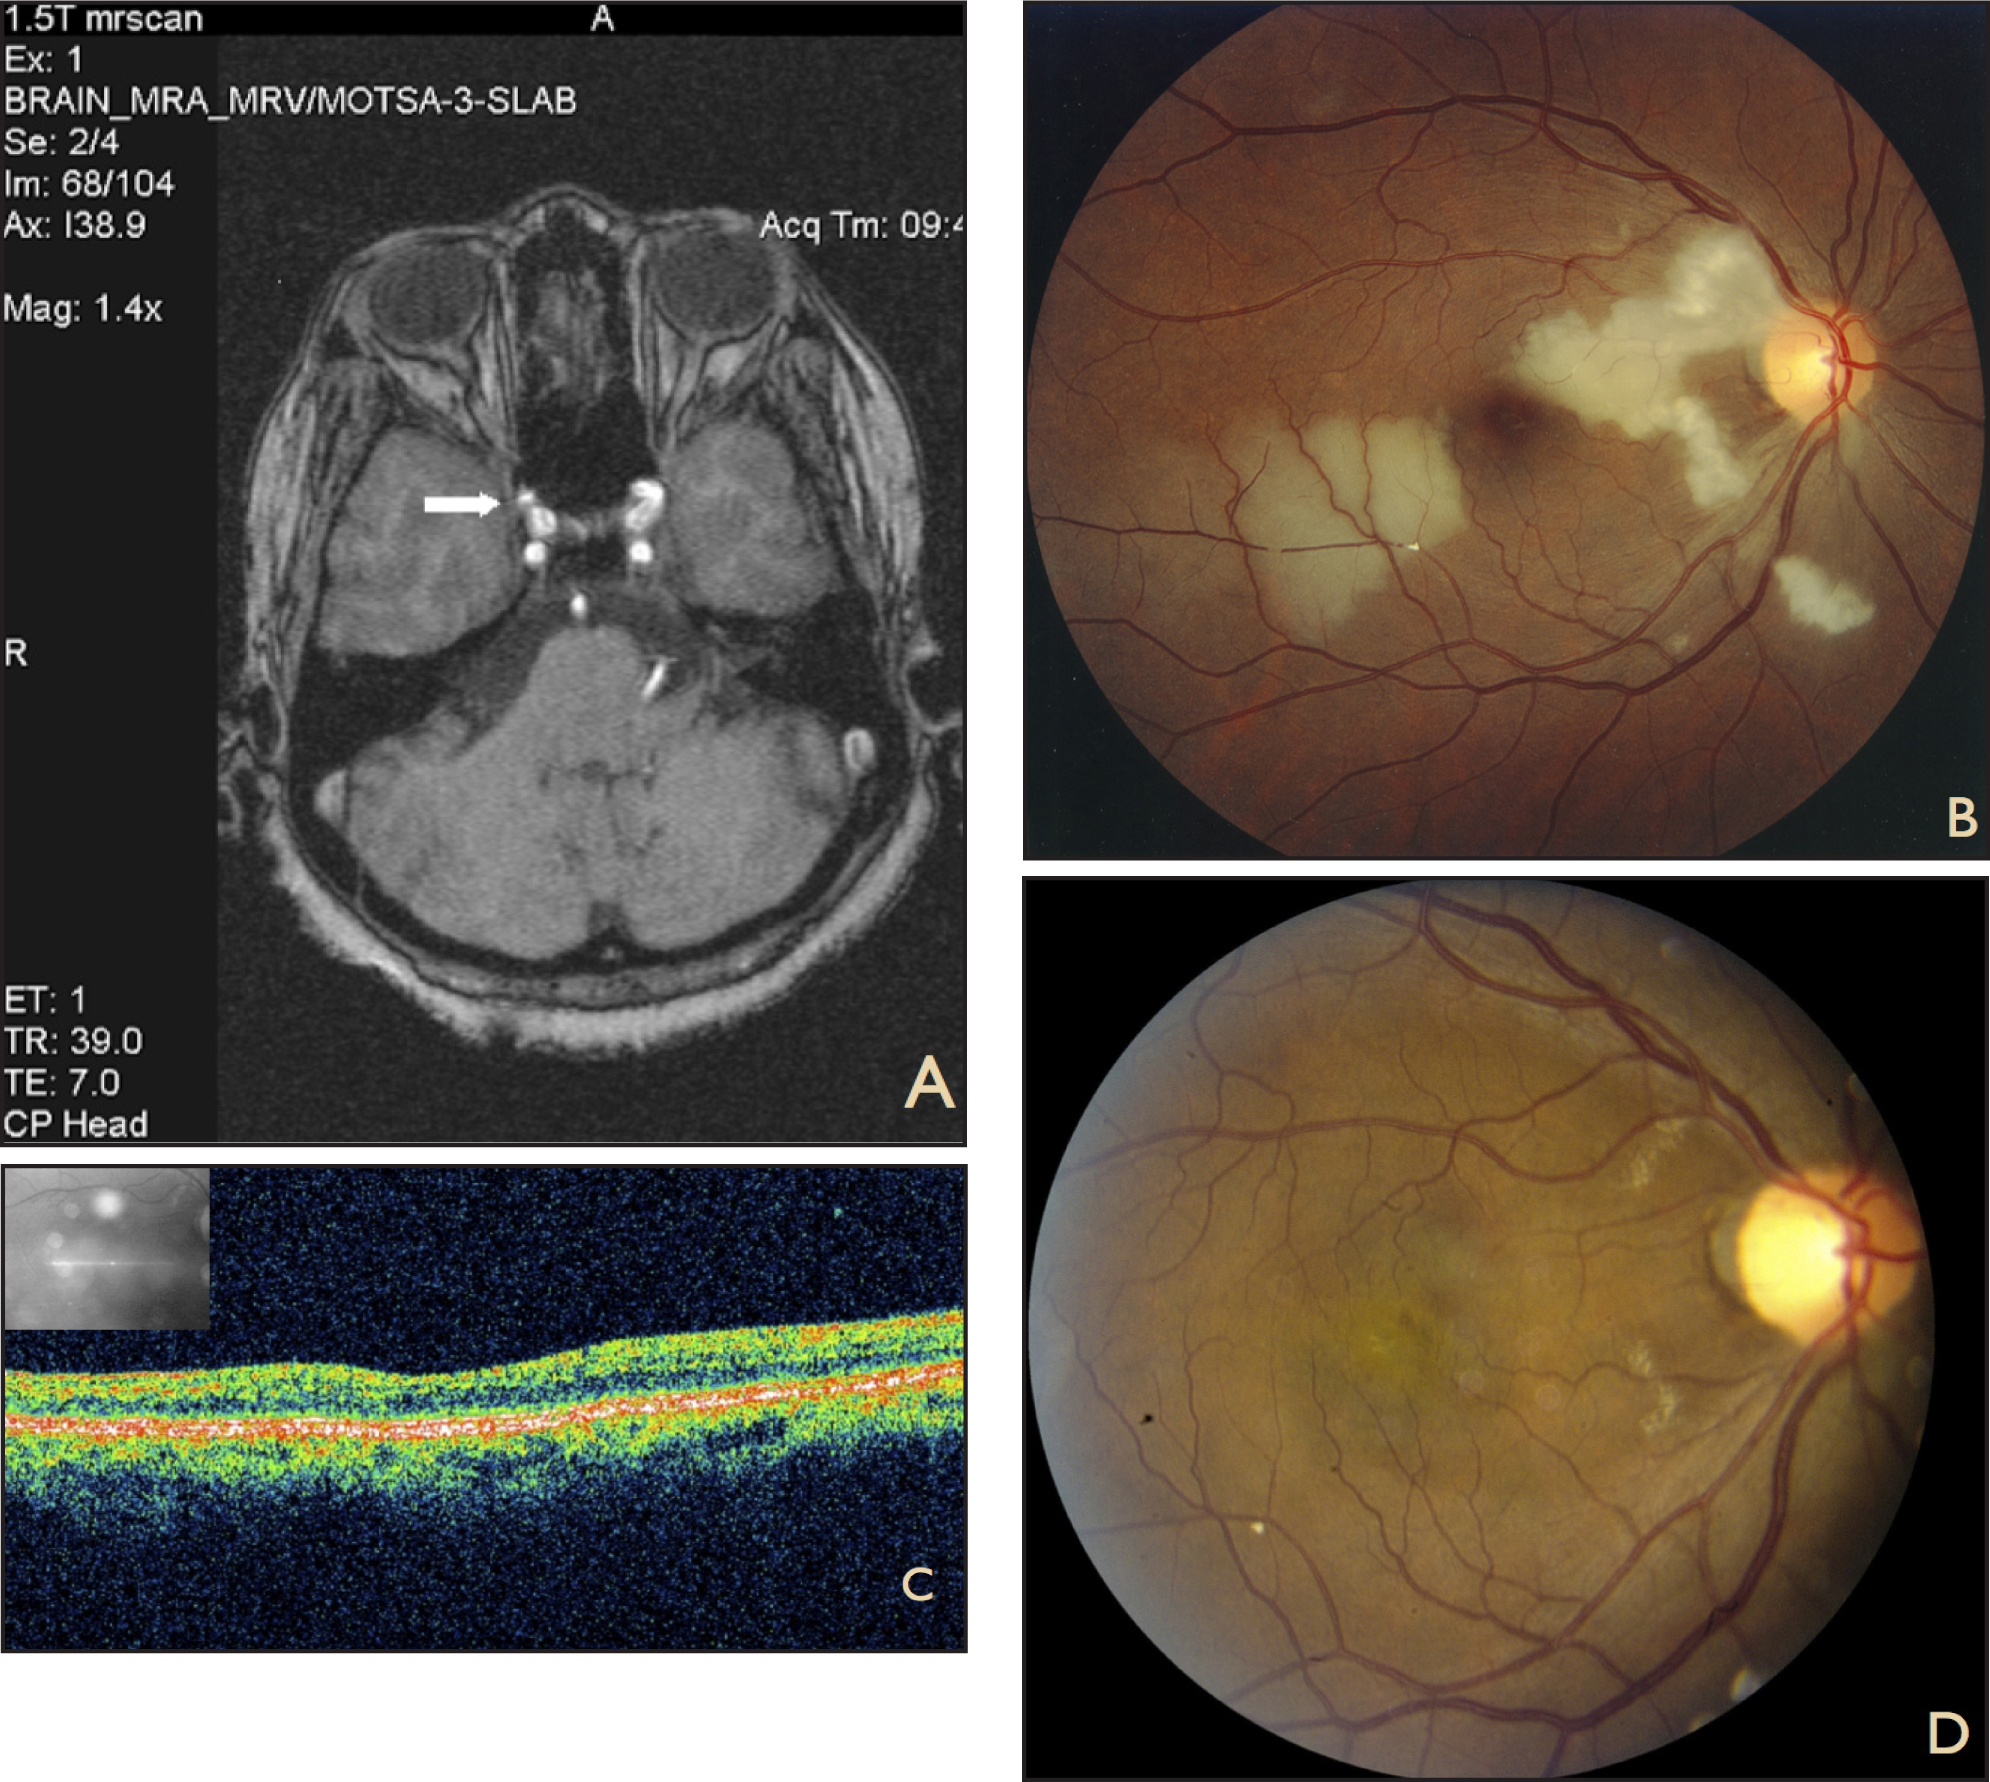 (A) MRI/MRA of the brain demonstrating right-sided paraclinoid aneurysm (white arrow). (B) Right fundus photograph with multiple branch retinal arteriolar occlusions with visible Hollenhorst plaques and peripapillary cotton-wool spots. (C) Time-domain OCT of the right macula with inner retinal thinning. (D) Right fundus photograph 8 months after presentation with fine residual lipid exudates nasal to macula and resolved retinal whitening. Note persistent Hollenhorst plaque at inferior arcade.